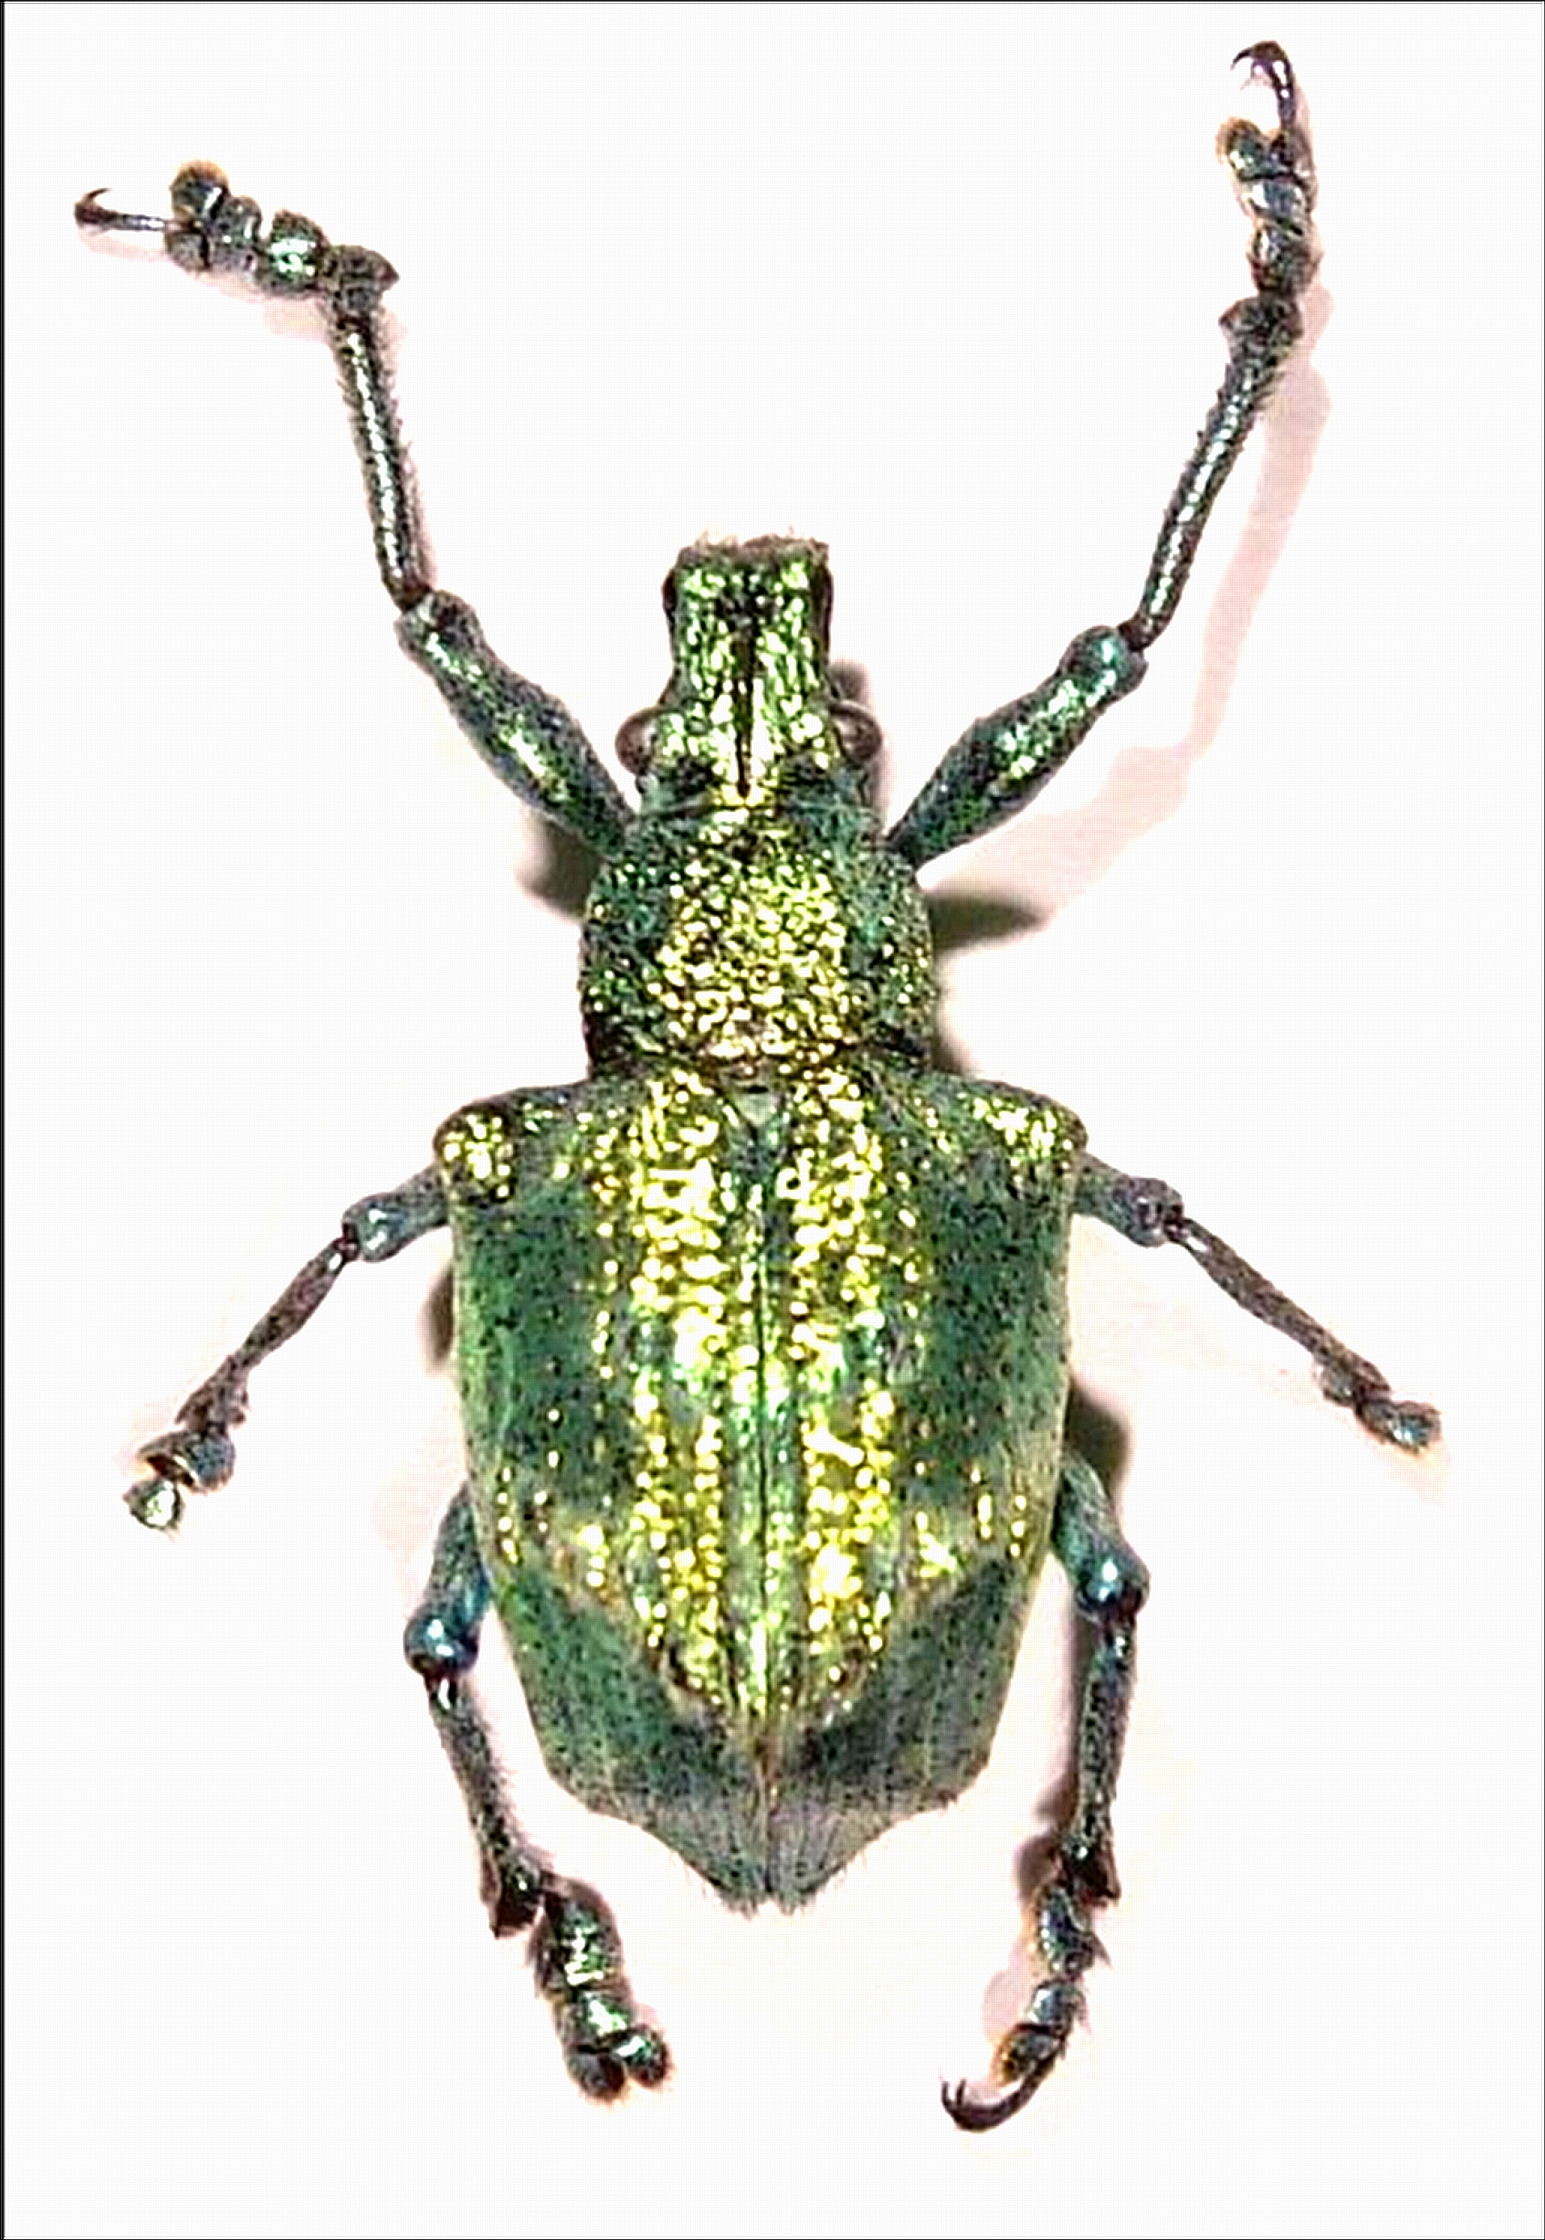 """This inch-long beetle from Brazil accomplished a task that so far has stymied human researchers. University of Utah chemists determined the beetle glows iridescent green because it evolved a crystal structure in its scales that is like the crystal structure of diamonds. Such a structure is considered an ideal architecture for """"photonic crystals"""" that will be needed to manipulate visible light in ultrafast optical computers of the future."""